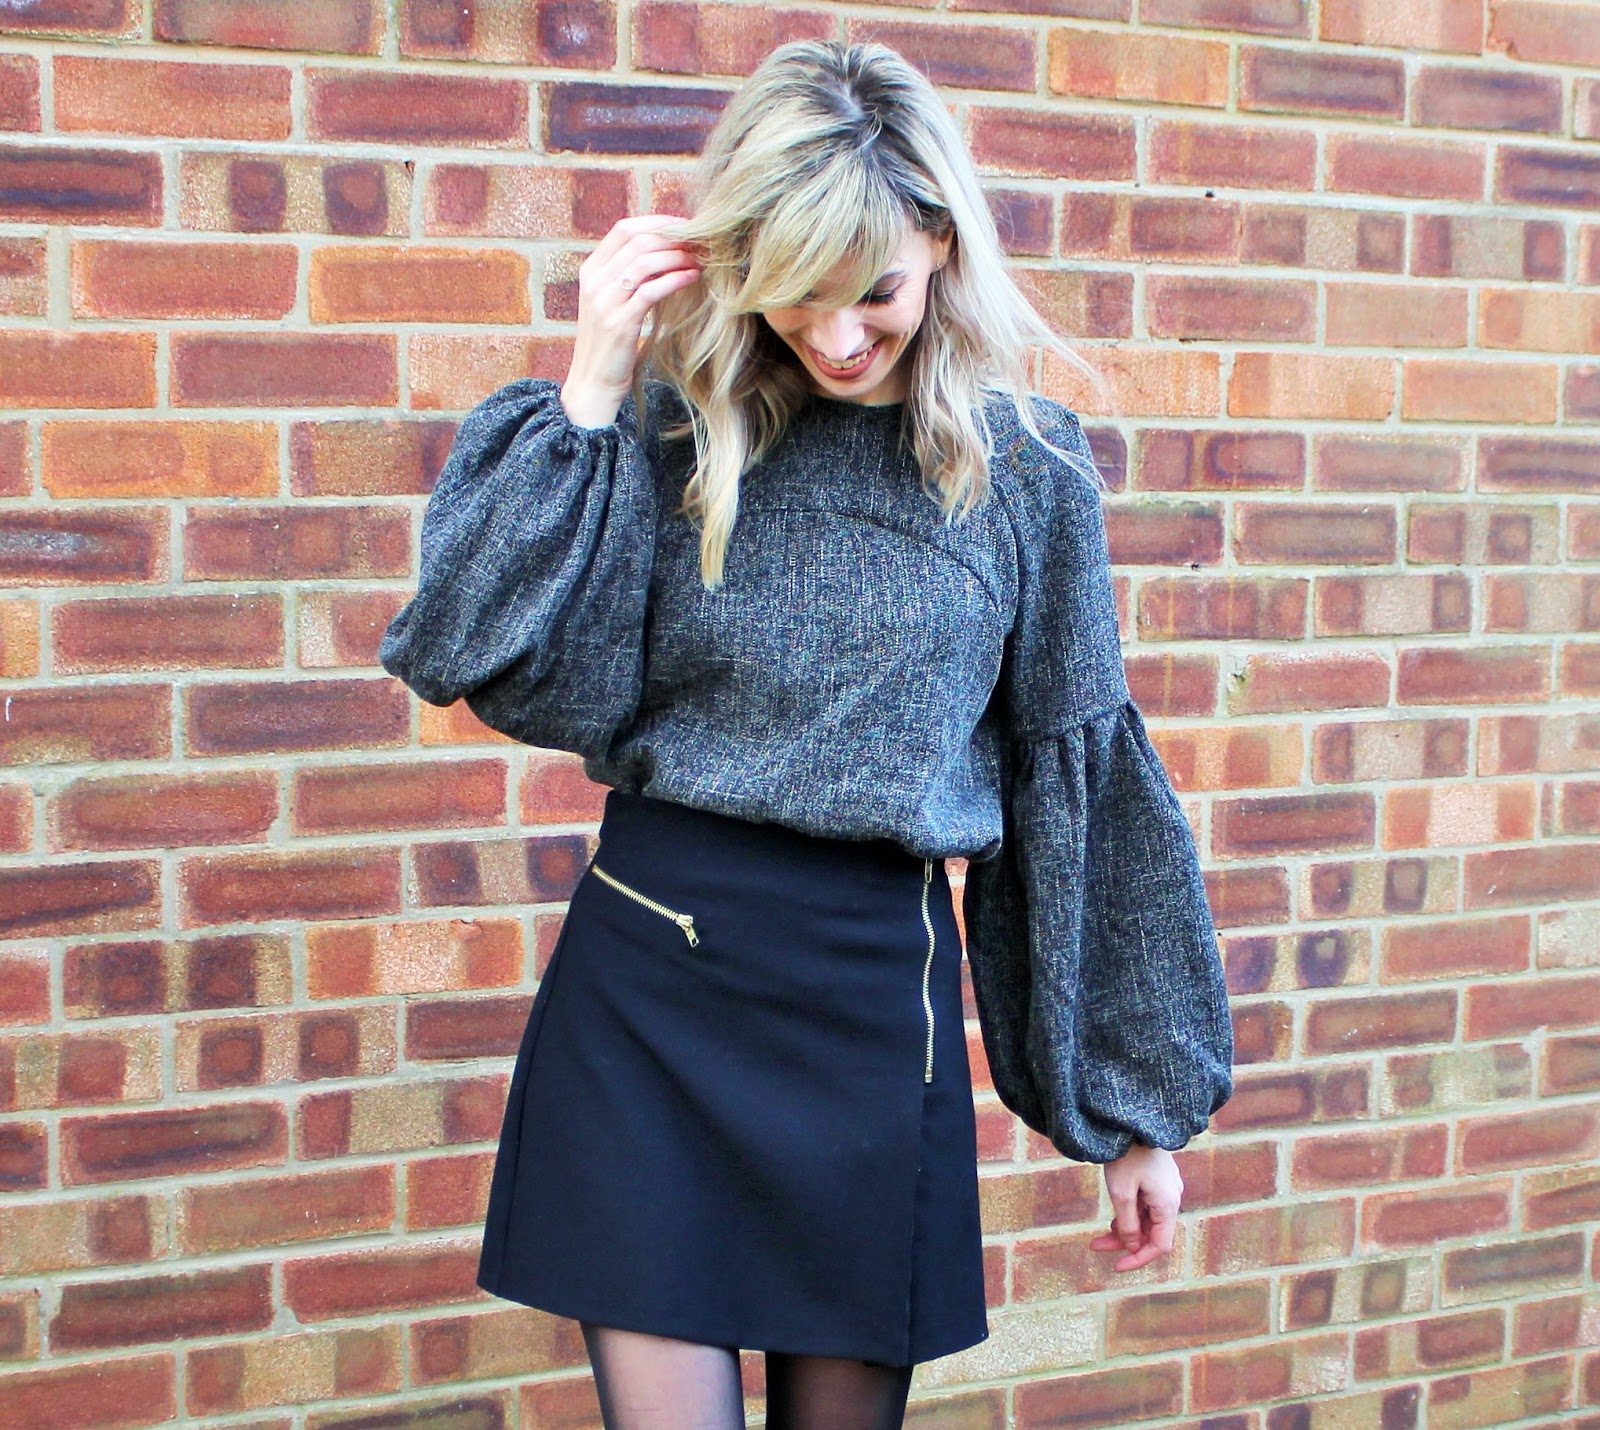 OOTD featuring Shein balloon sleeve top, Topshop A-line Skirt and Zara Ankle Boots - 3